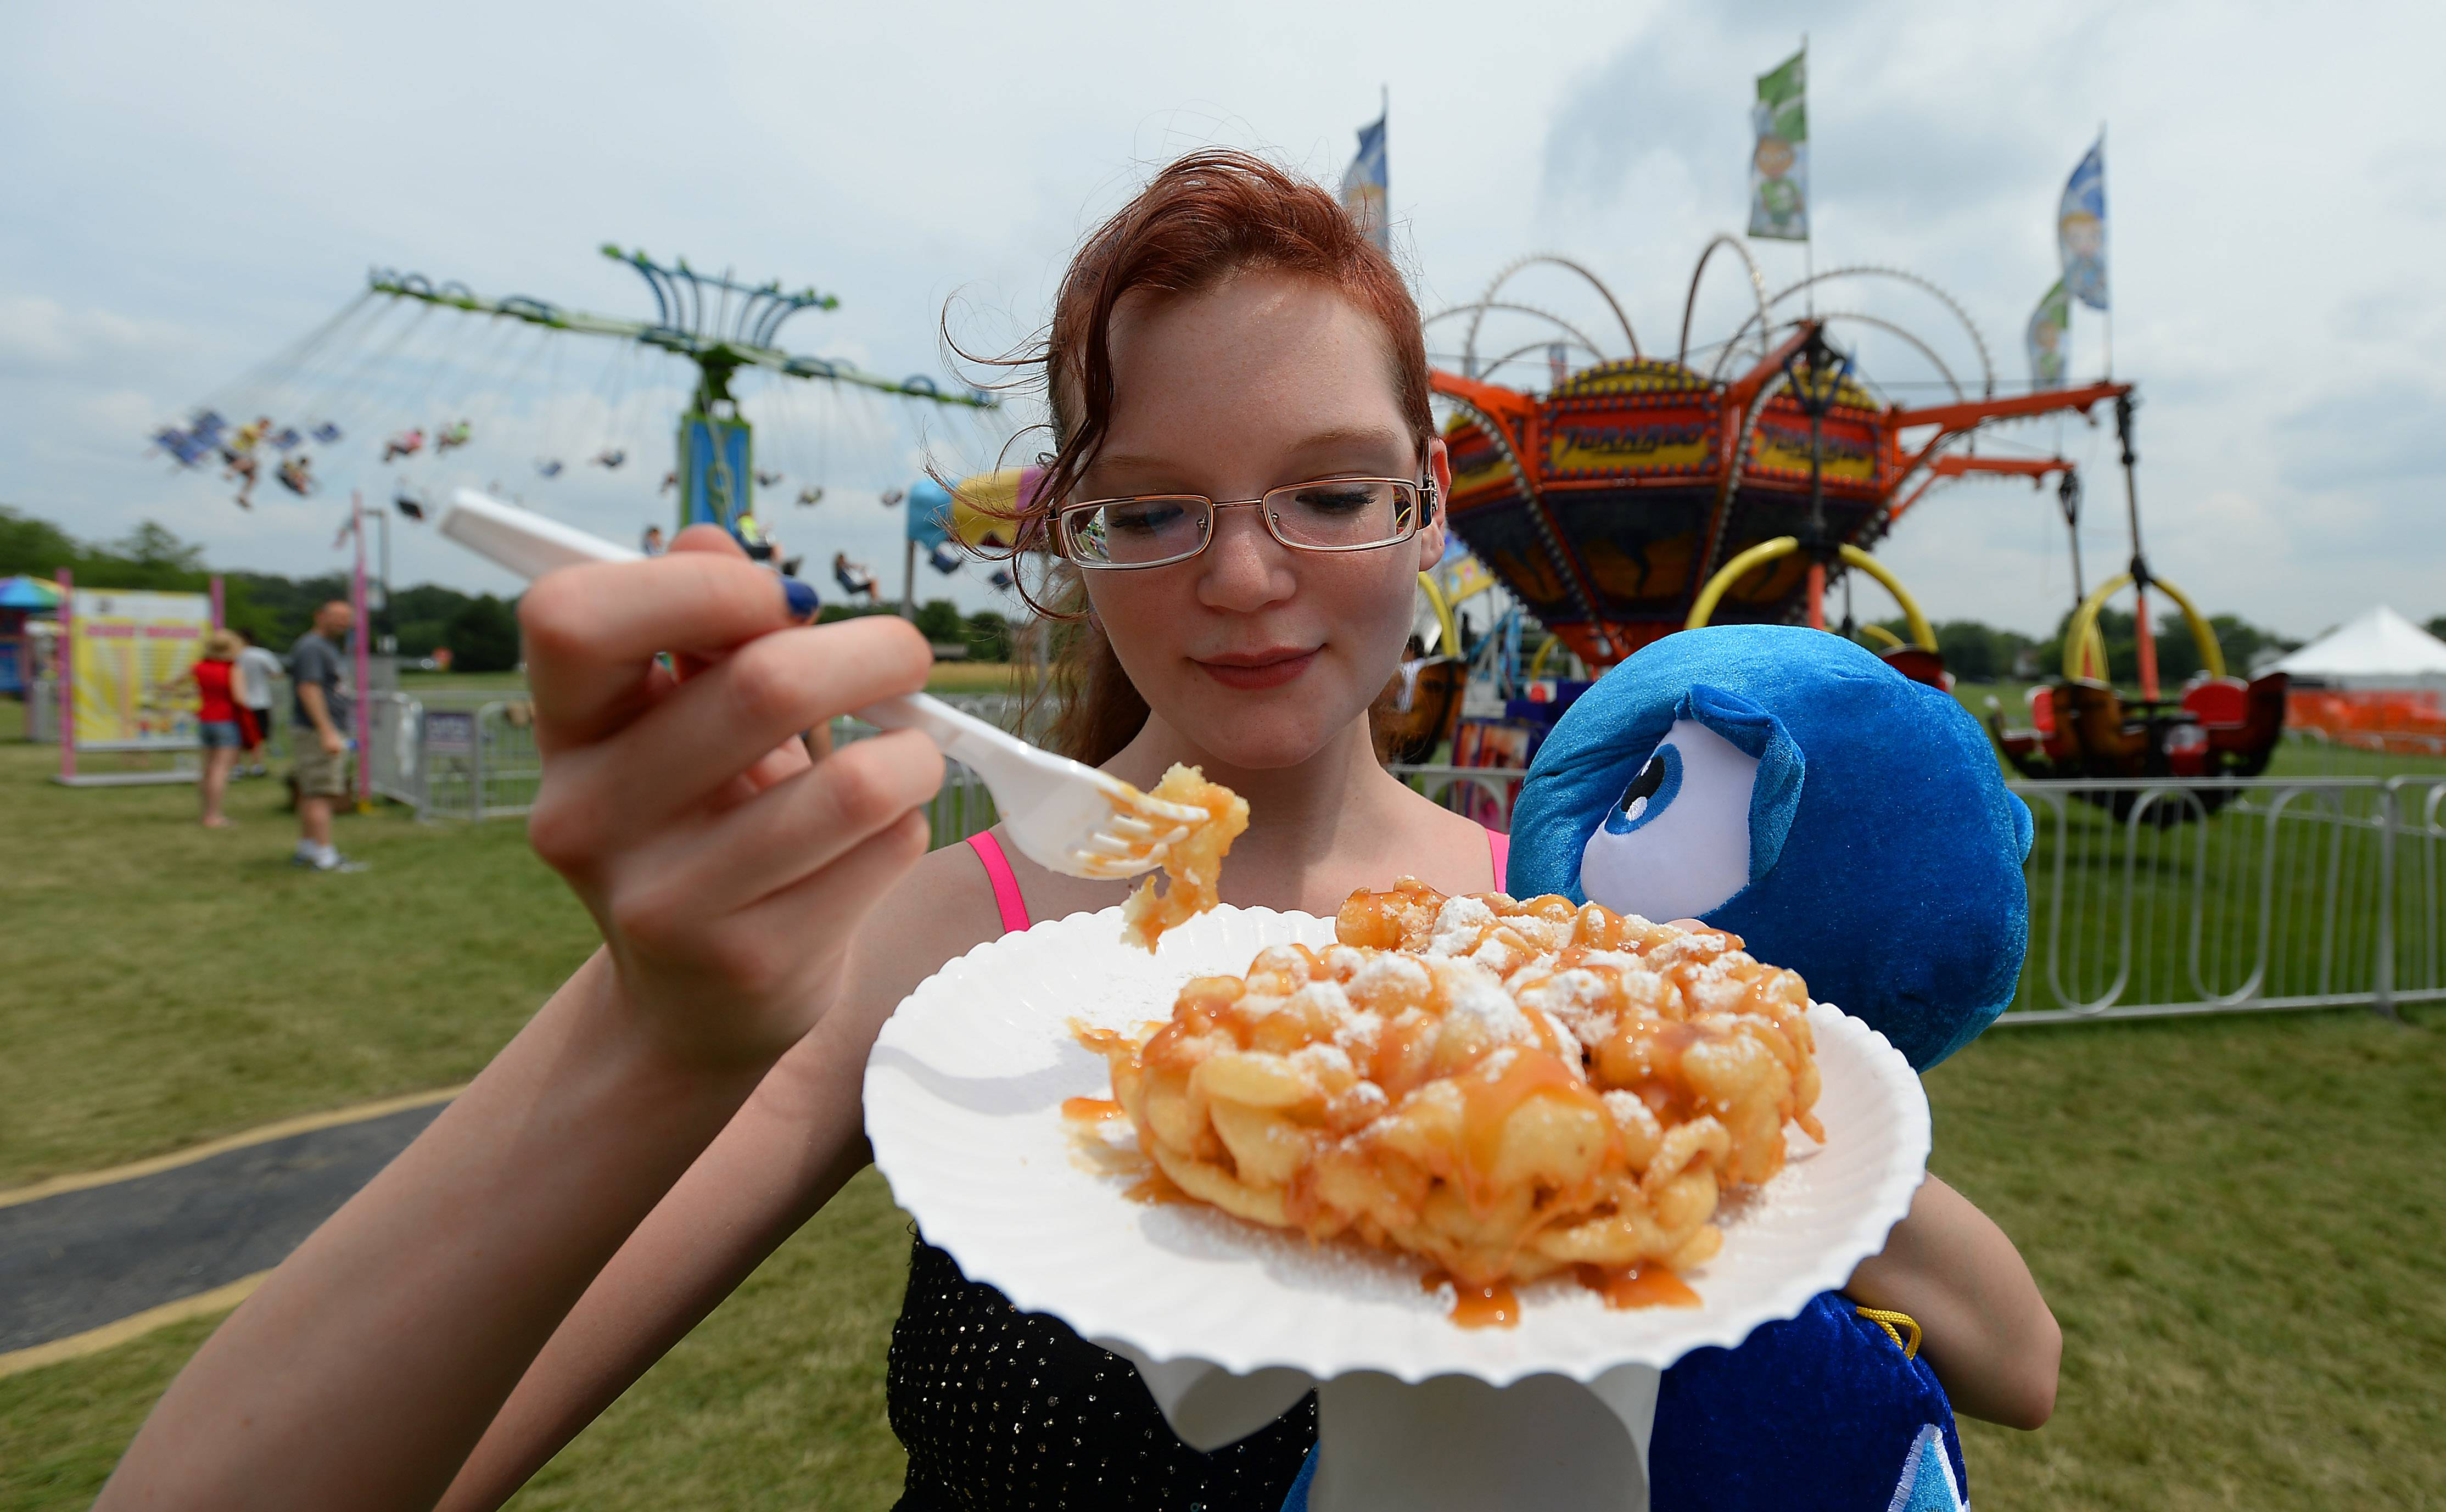 Funnel cake and caramel on a hot summer day is perfect for Katherine Kennedy, of Bartlett, as she enjoys the Bartlett Fourth of July Festival on Saturday.